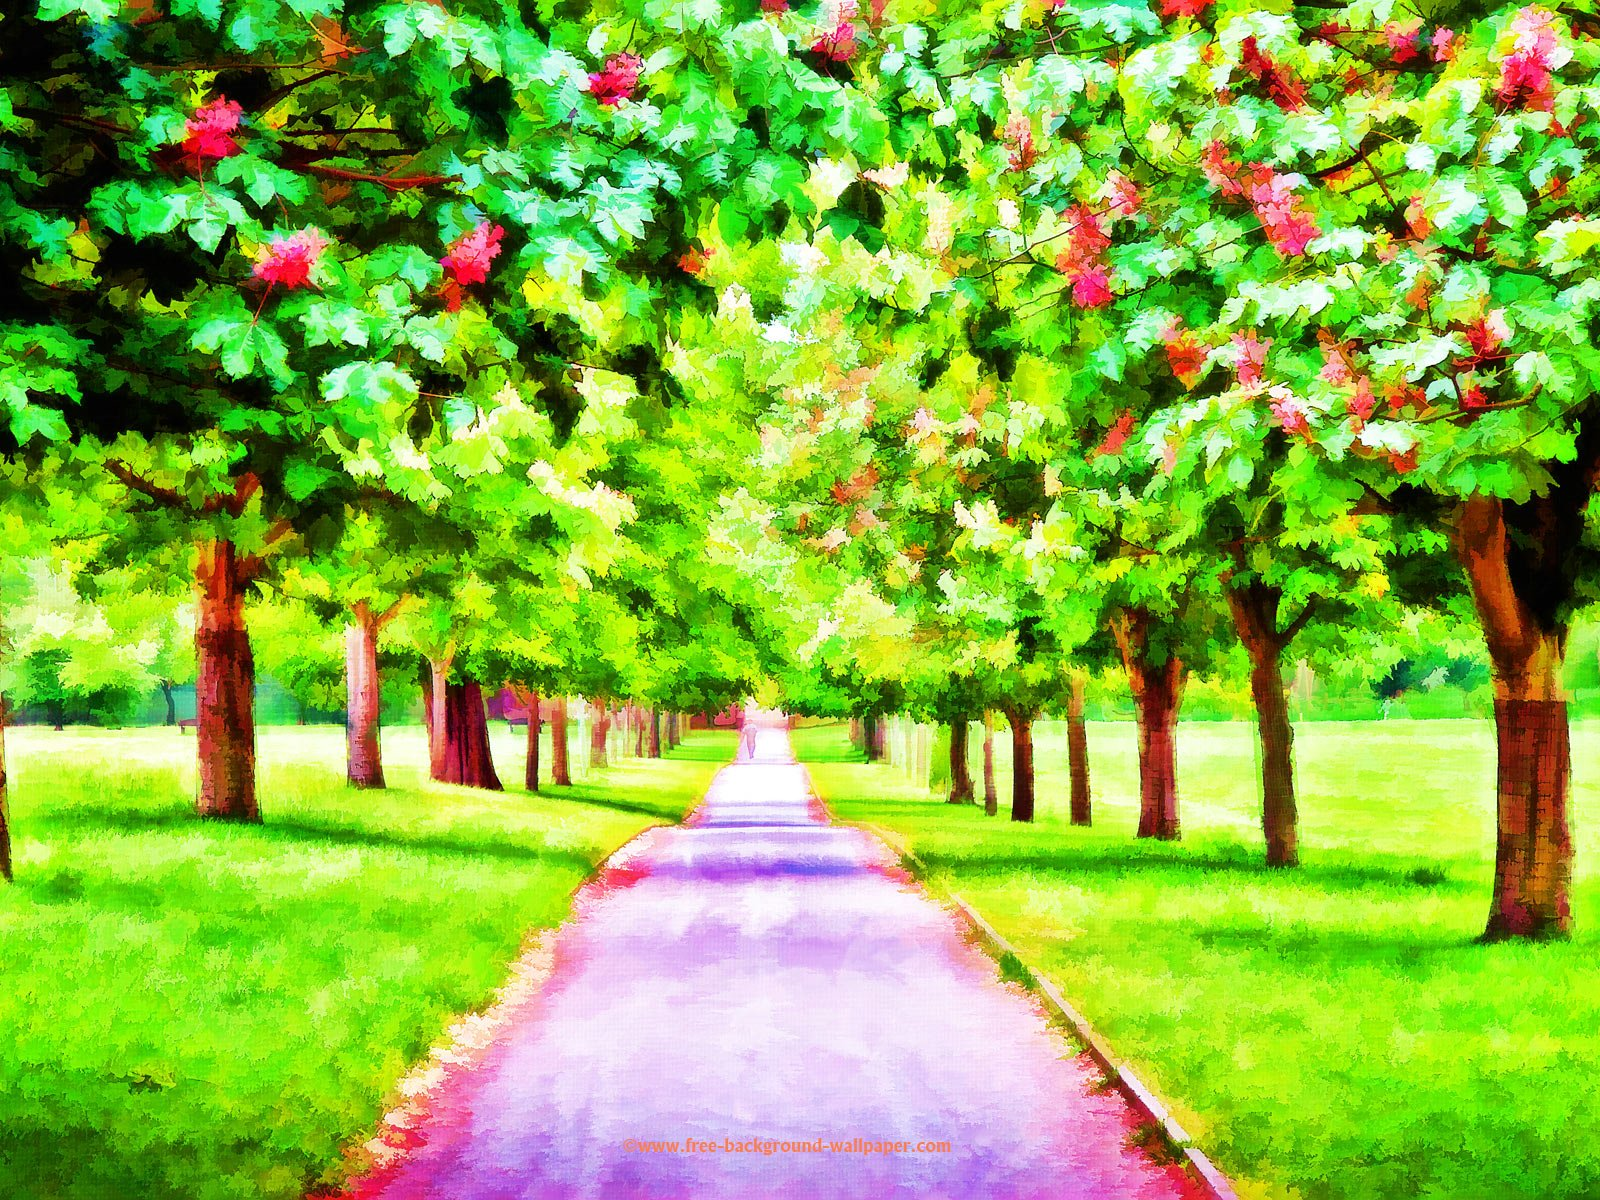 Cherry Tree Walk Beautiful Desktop Background   1600x1200 1600x1200